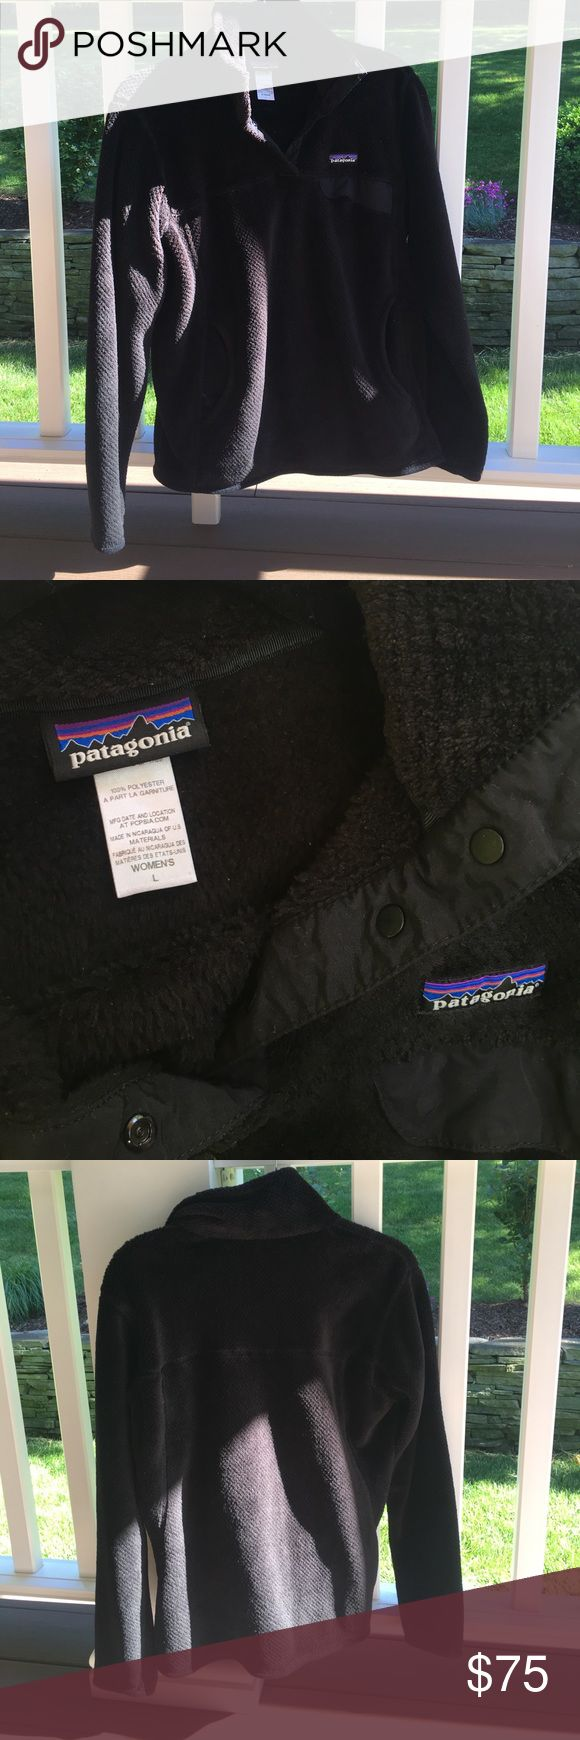 Patagonia Women's Fleece Patagonia 'W's Re-Tool Snap-T Pullover' fleece in black! Worn only a handful of times, basically brand new. Excellent condition, no rips or any flaws! Size L Patagonia Tops Sweatshirts & Hoodies